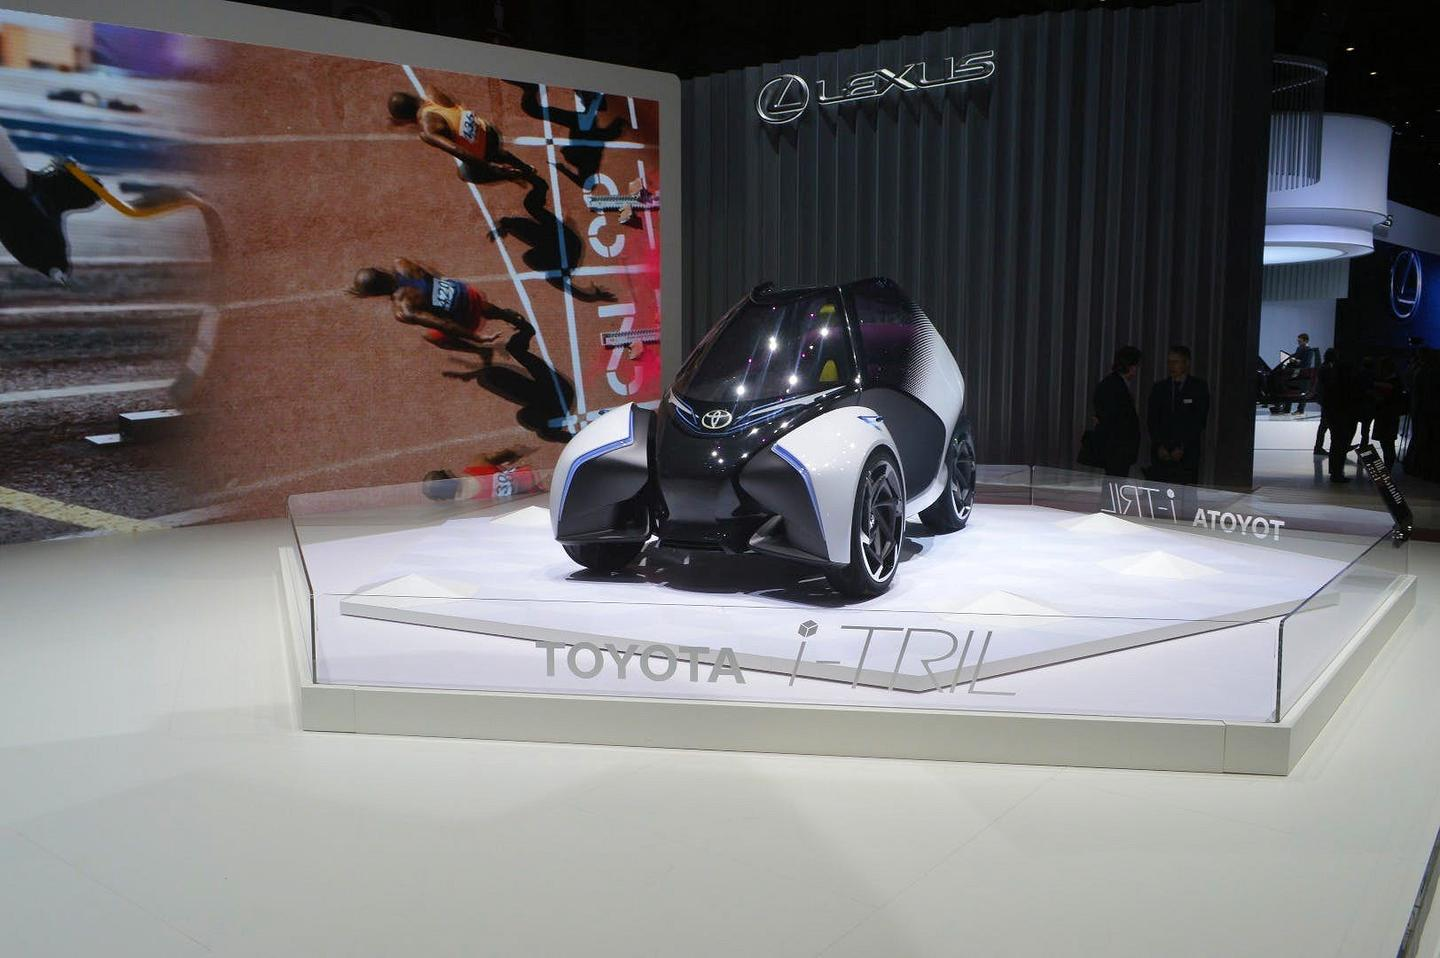 Toyota says that the i-Tril features autonomous driving tech, but is designed to be so much fun that the humandriver will want to take control